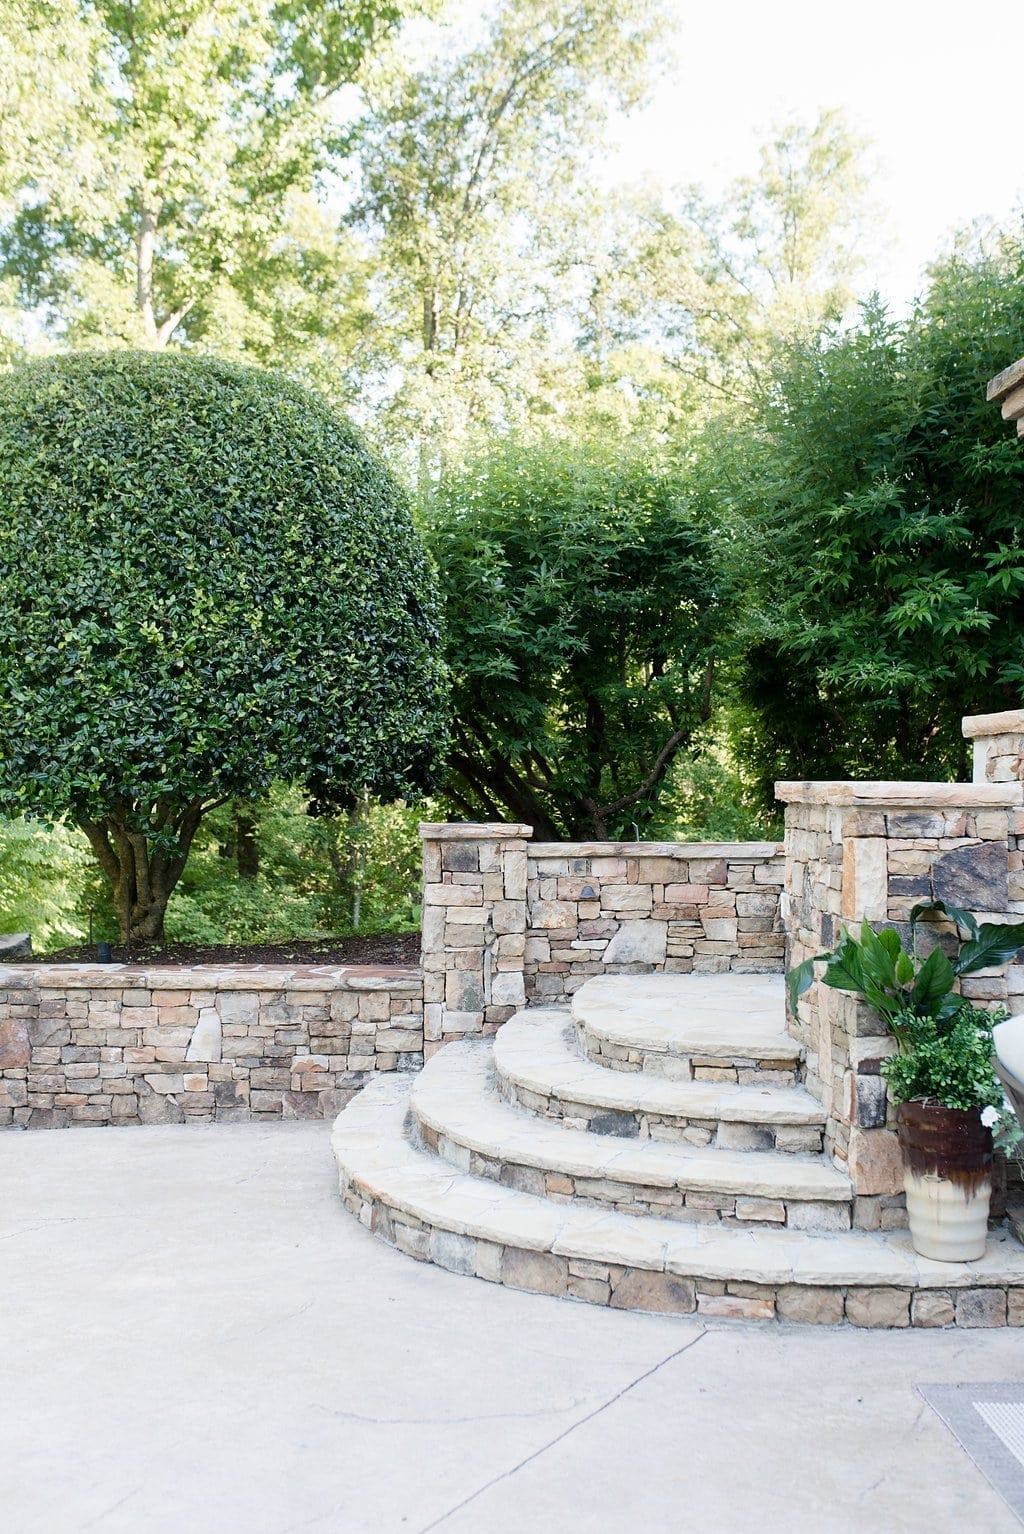 Holly tree shaped in round form with Vitex trees.